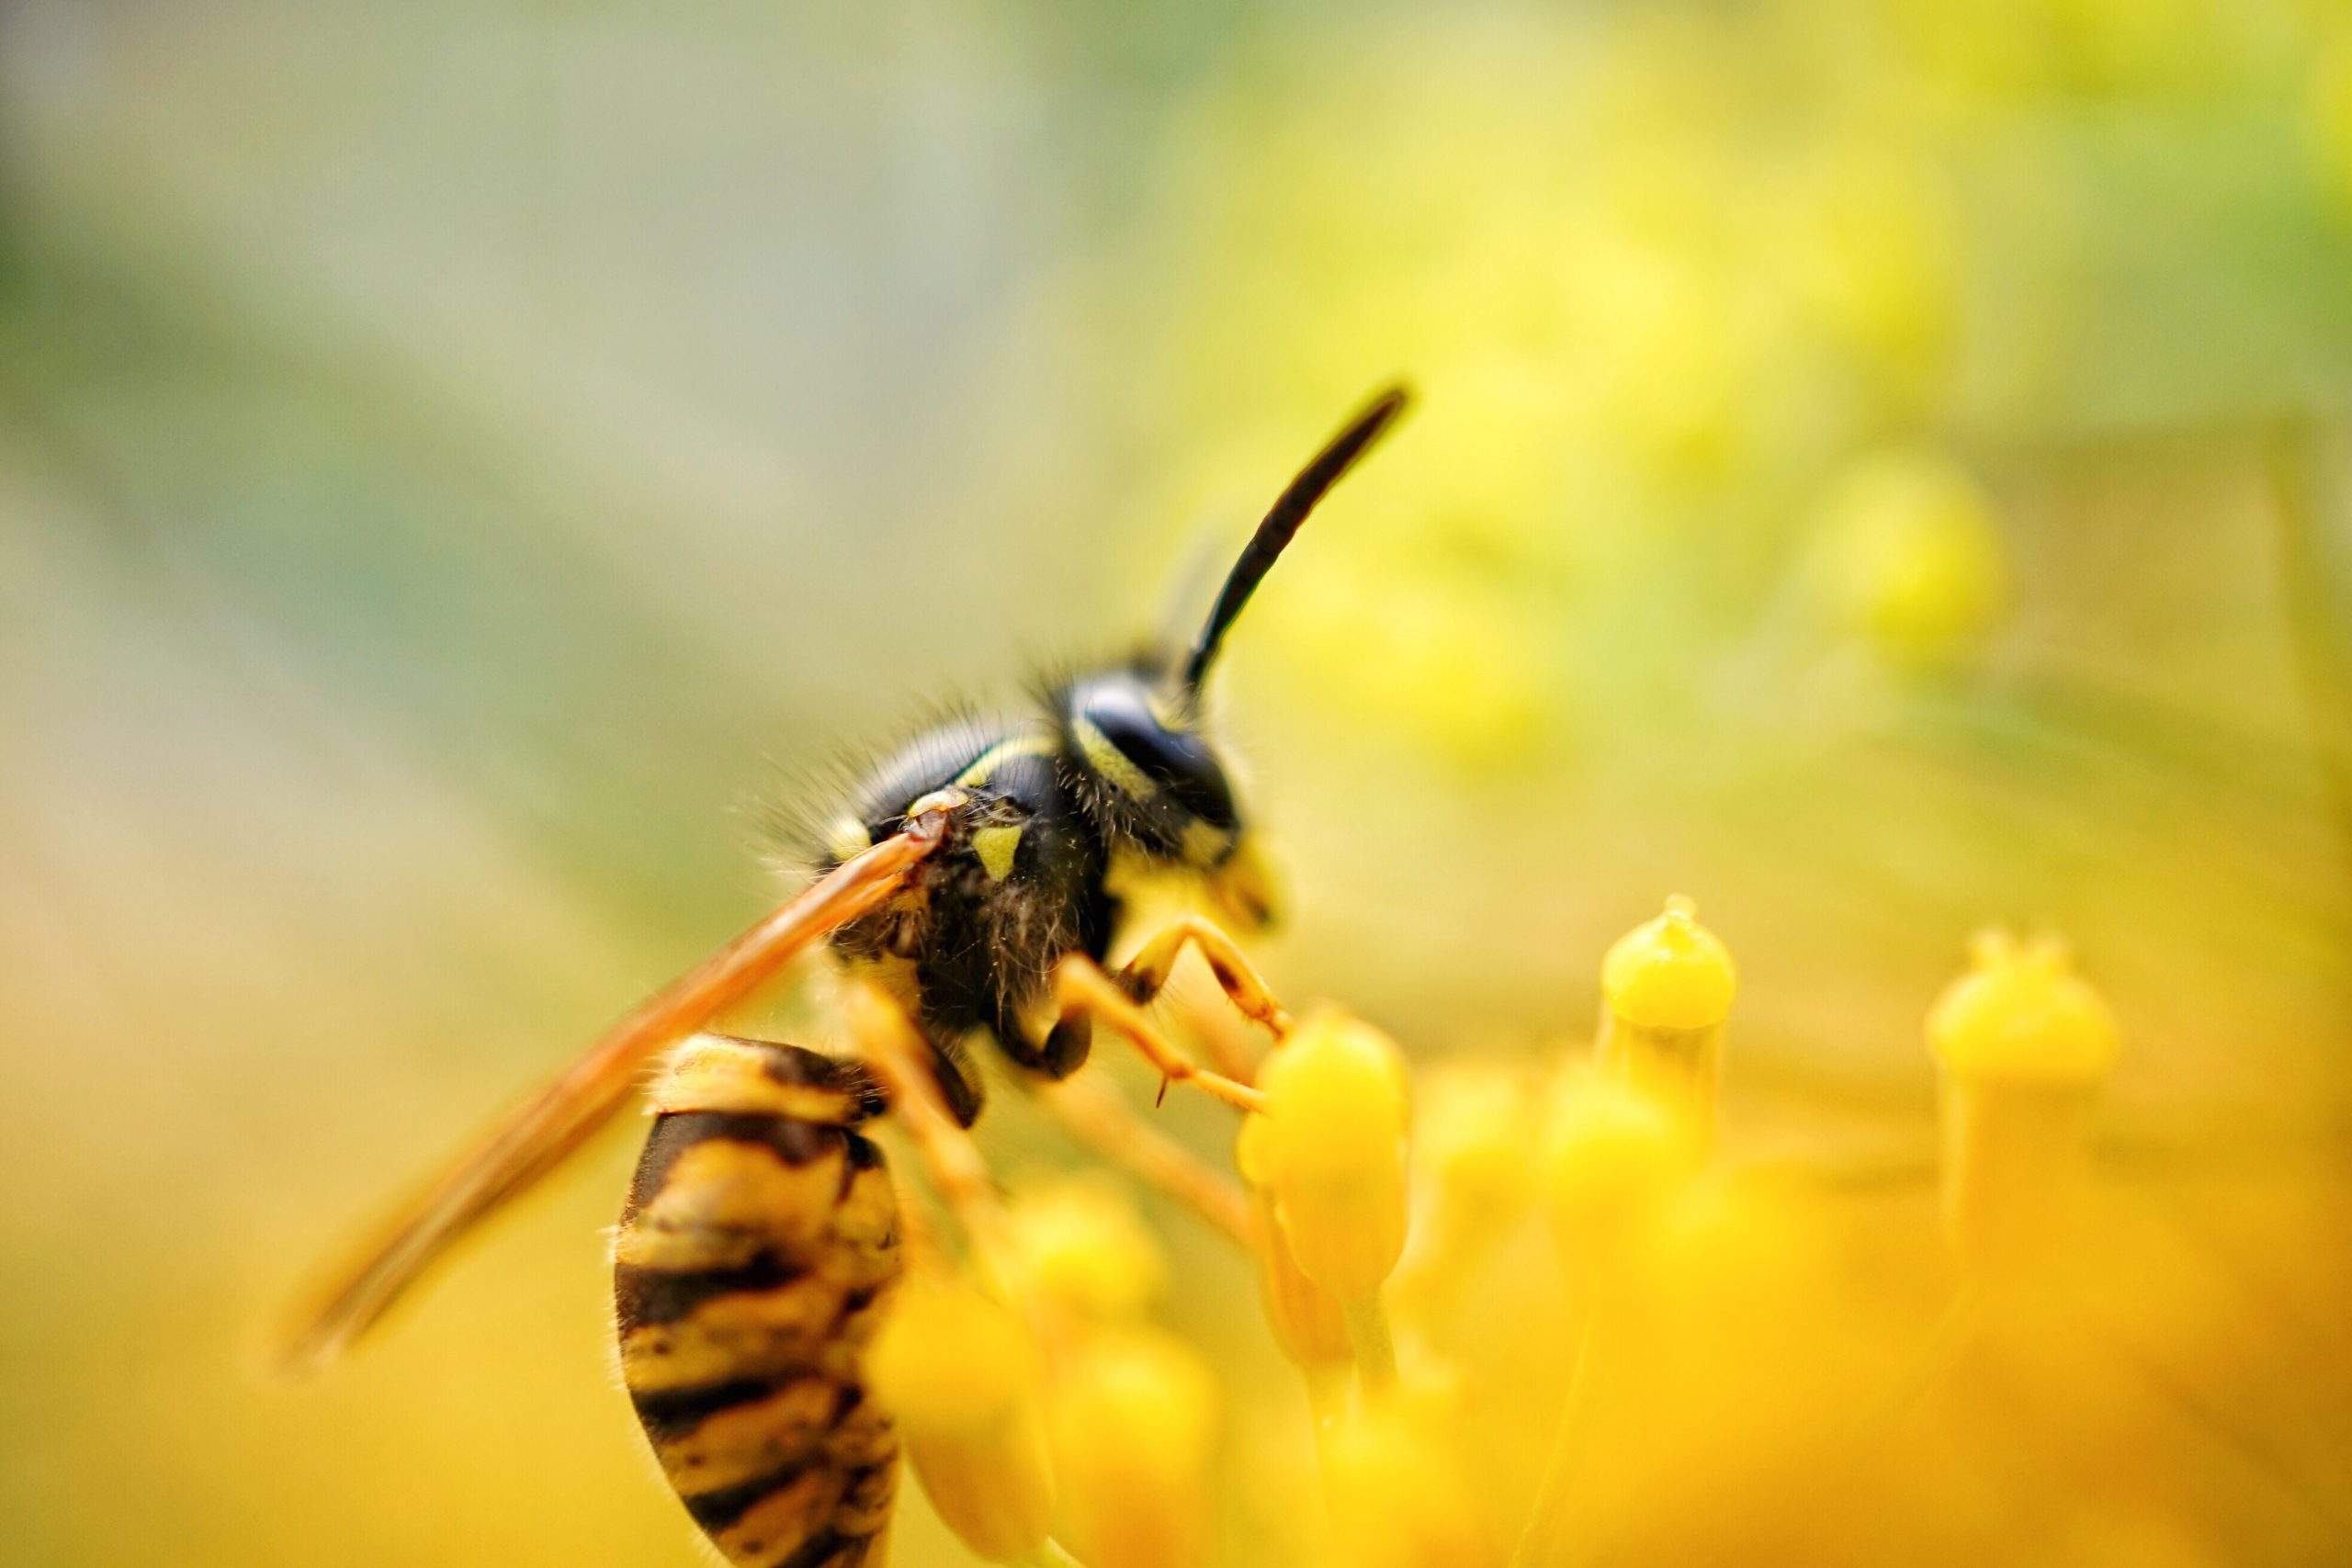 Image of wasp extracting nectar